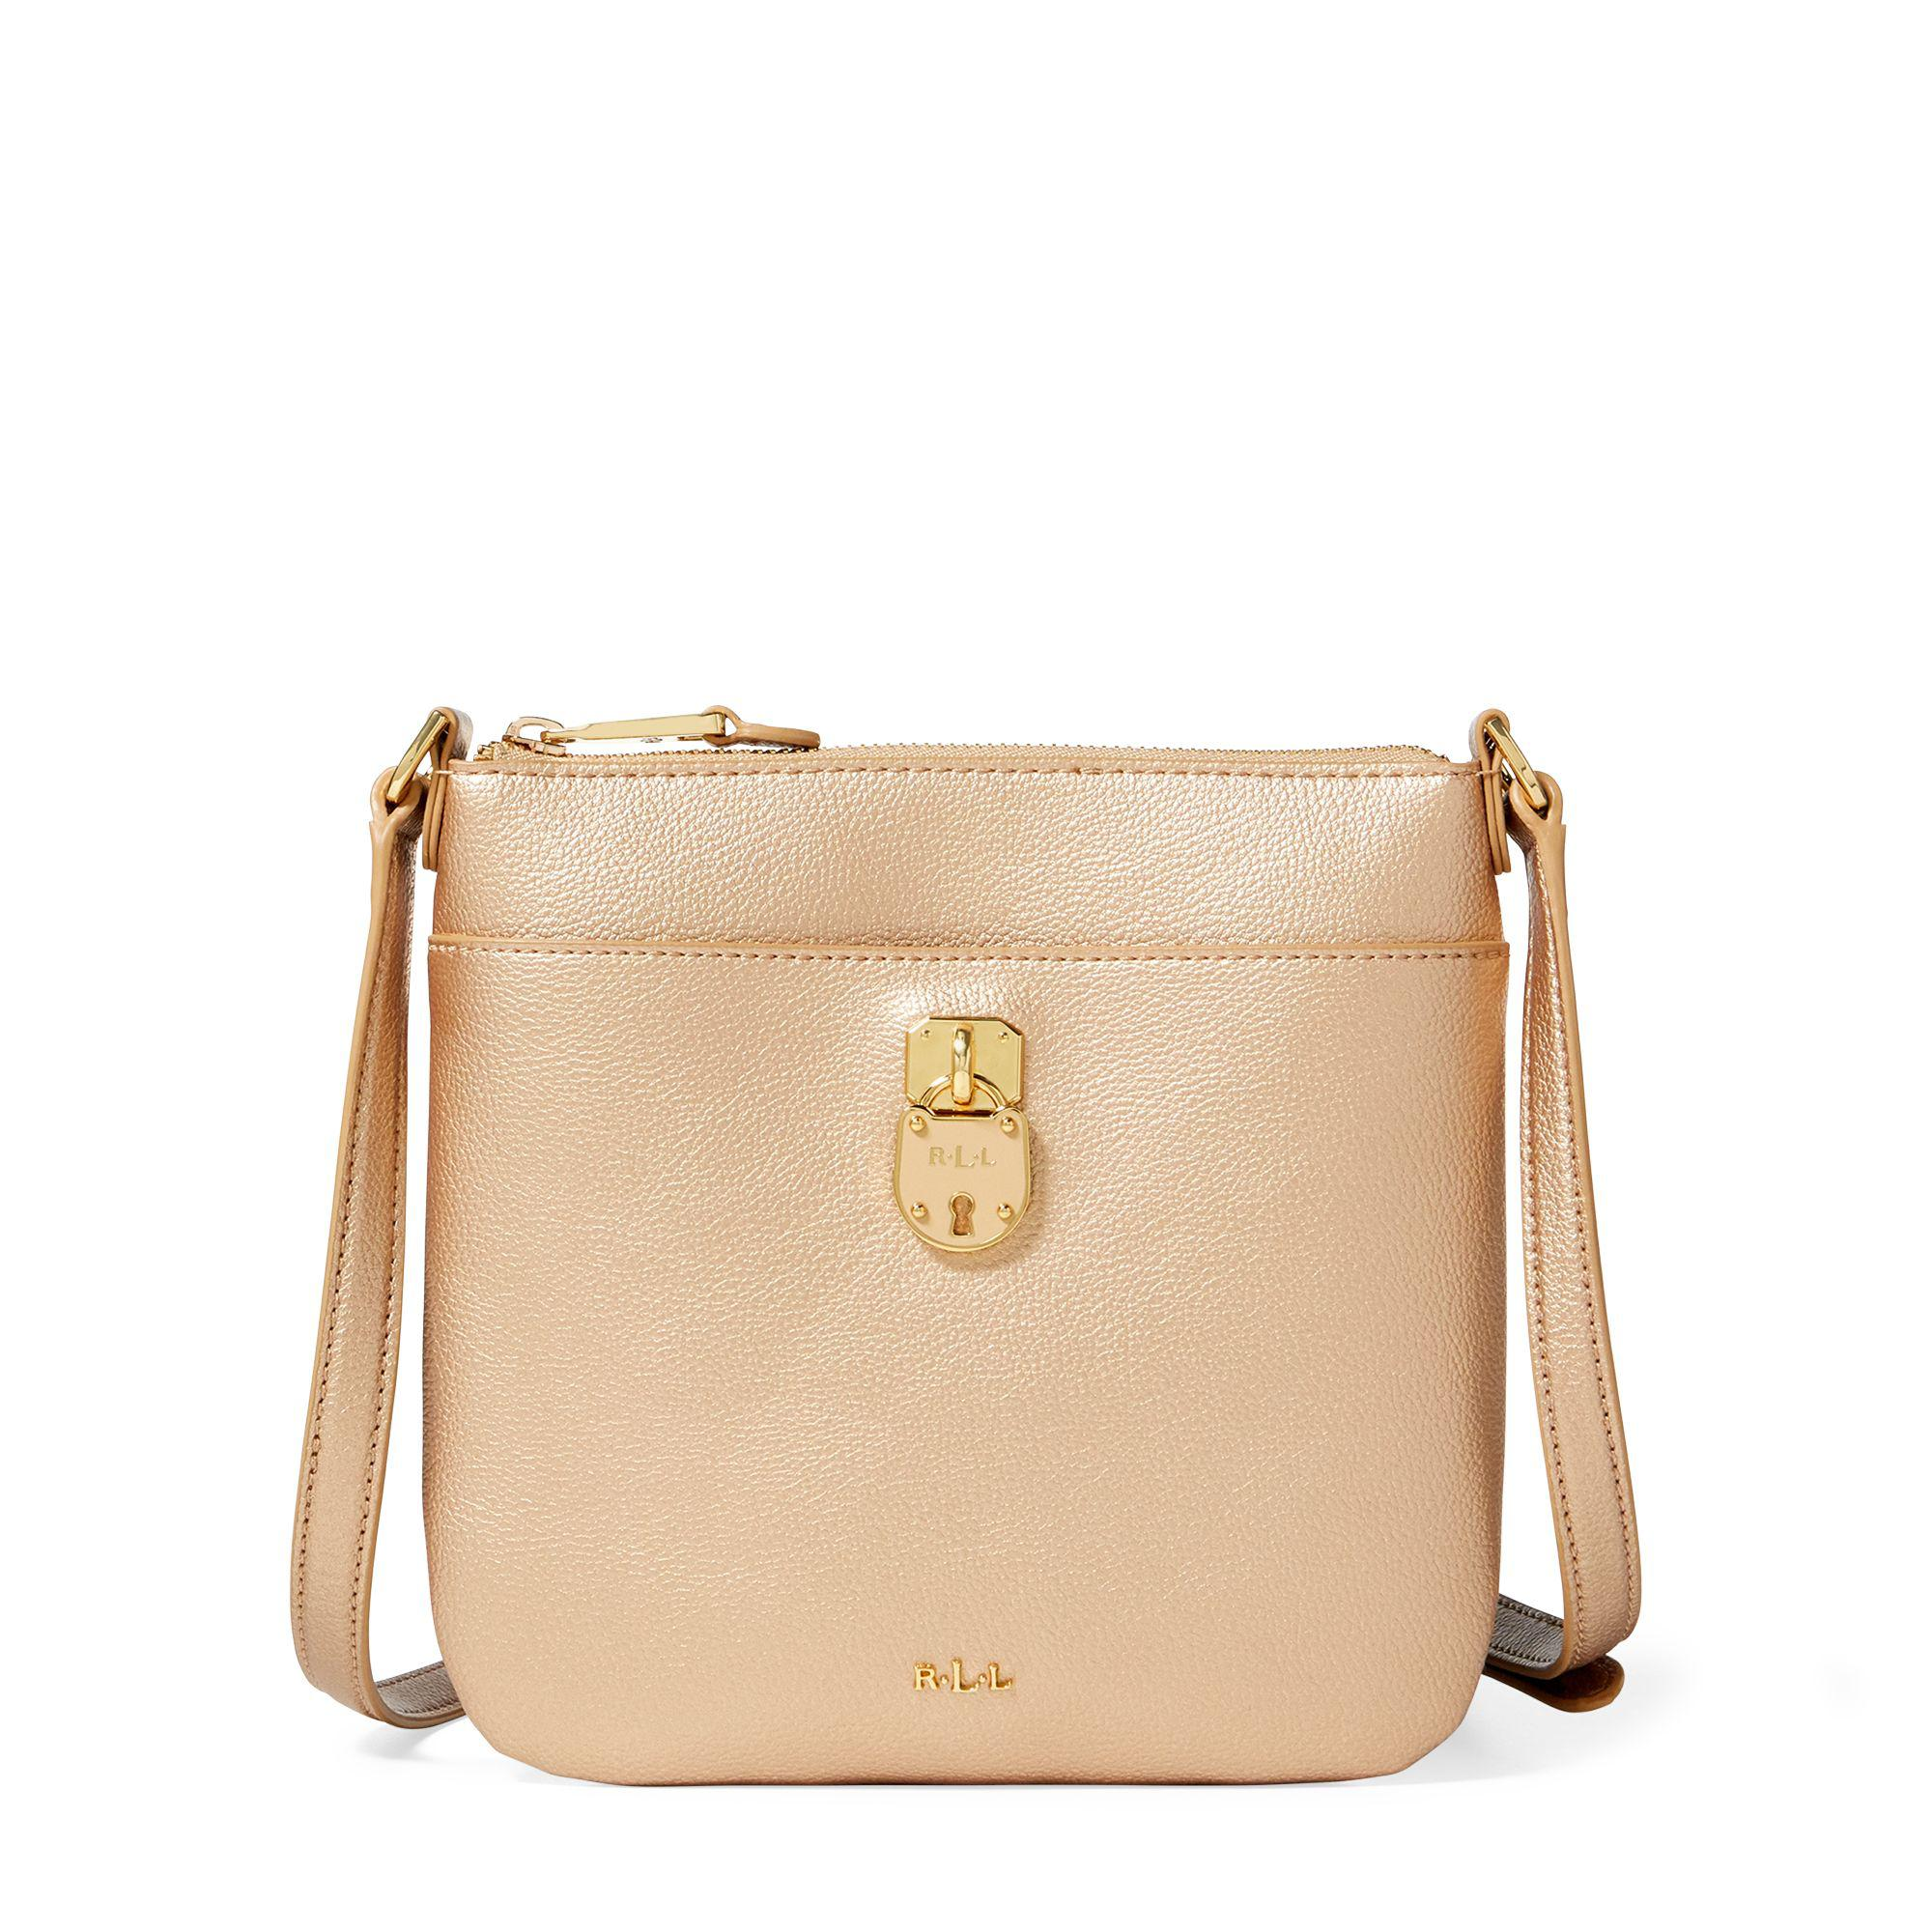 7af4aa8085 Lyst - Ralph Lauren Pebbled Lila Crossbody Bag in Natural